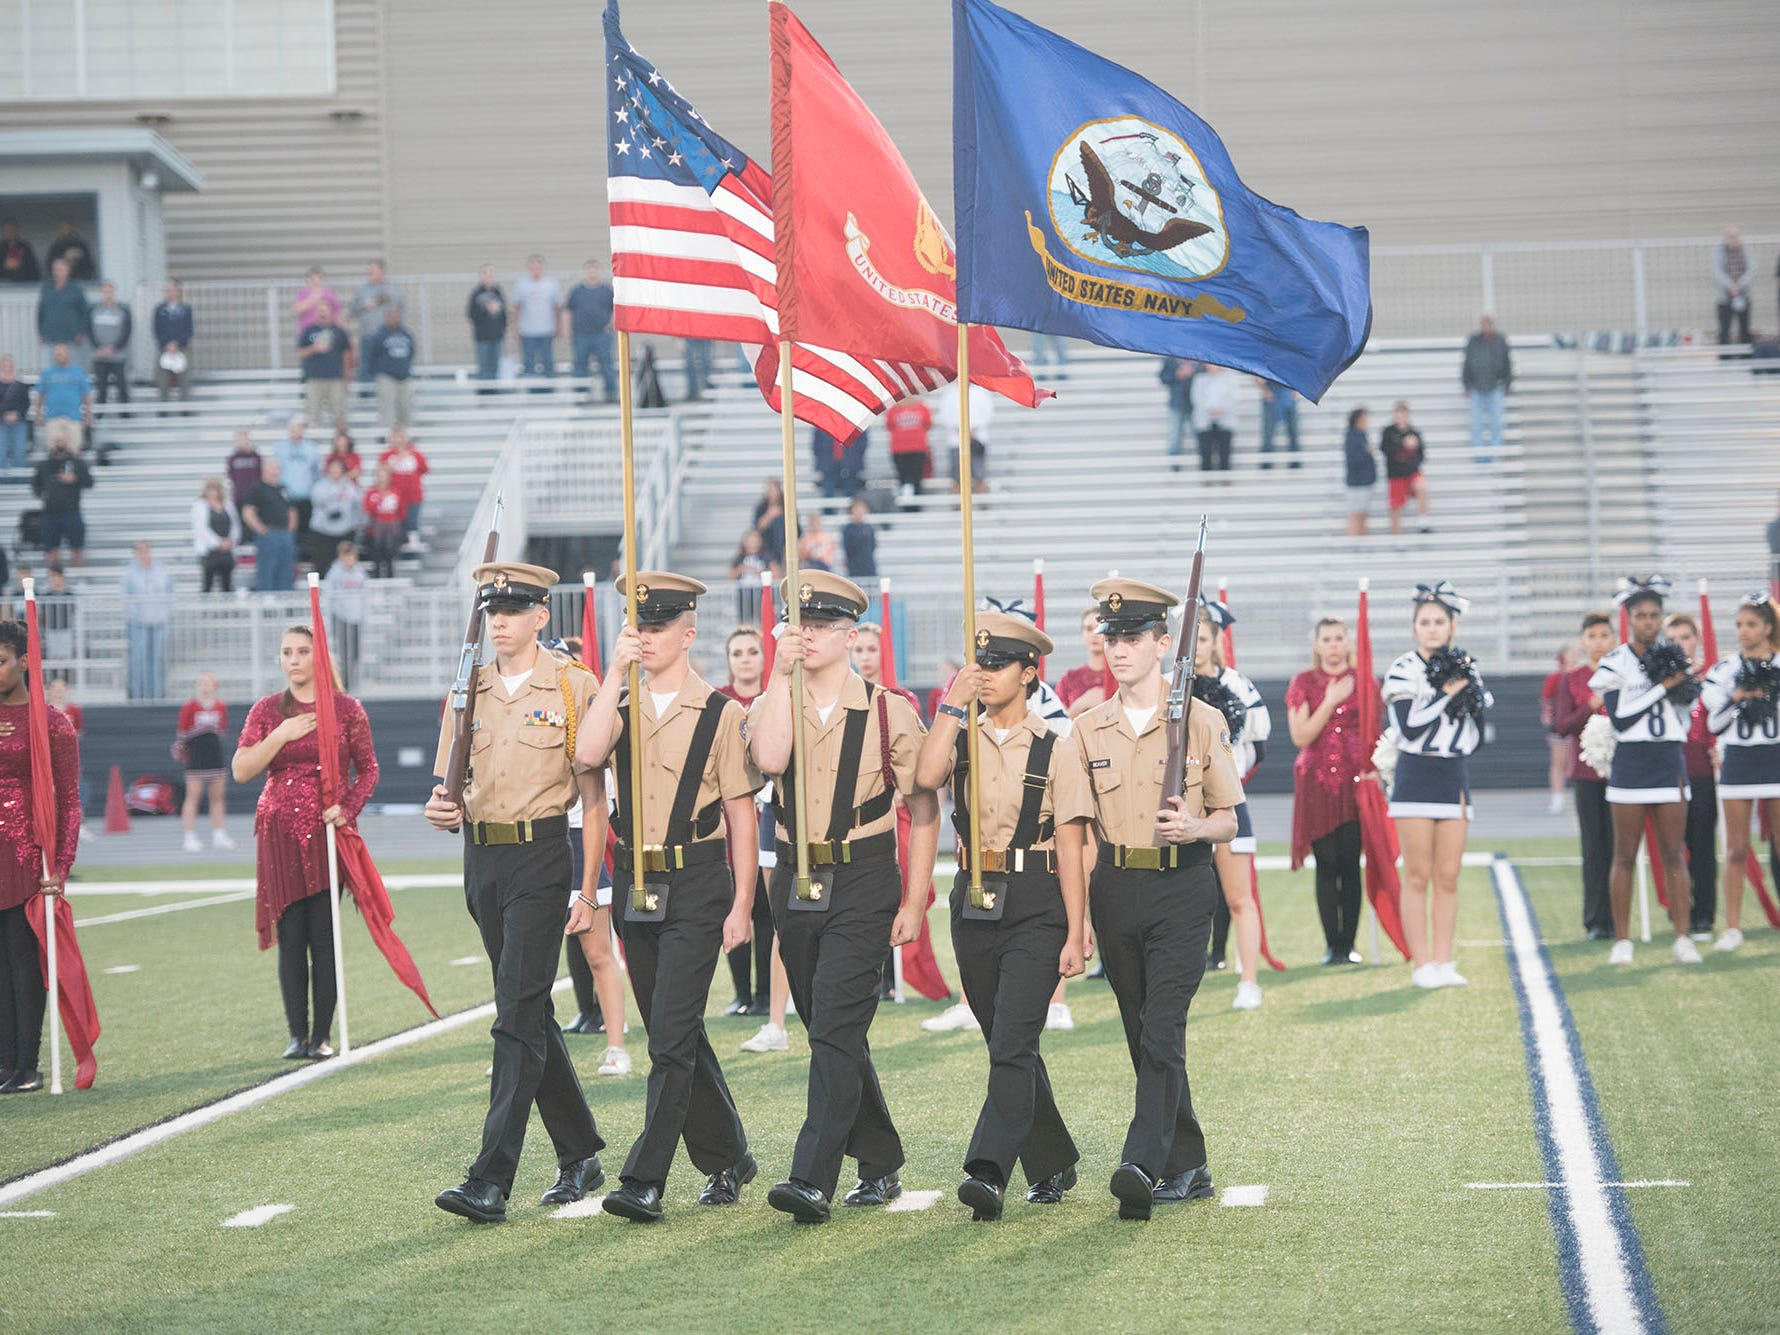 Chambersburg Navy JROTC enter the field. Chambersburg Trojans are 5-1 after a homecoming victory over Cumberland Valley 28-14 in PIAA football on Friday, Sept. 28, 2018.